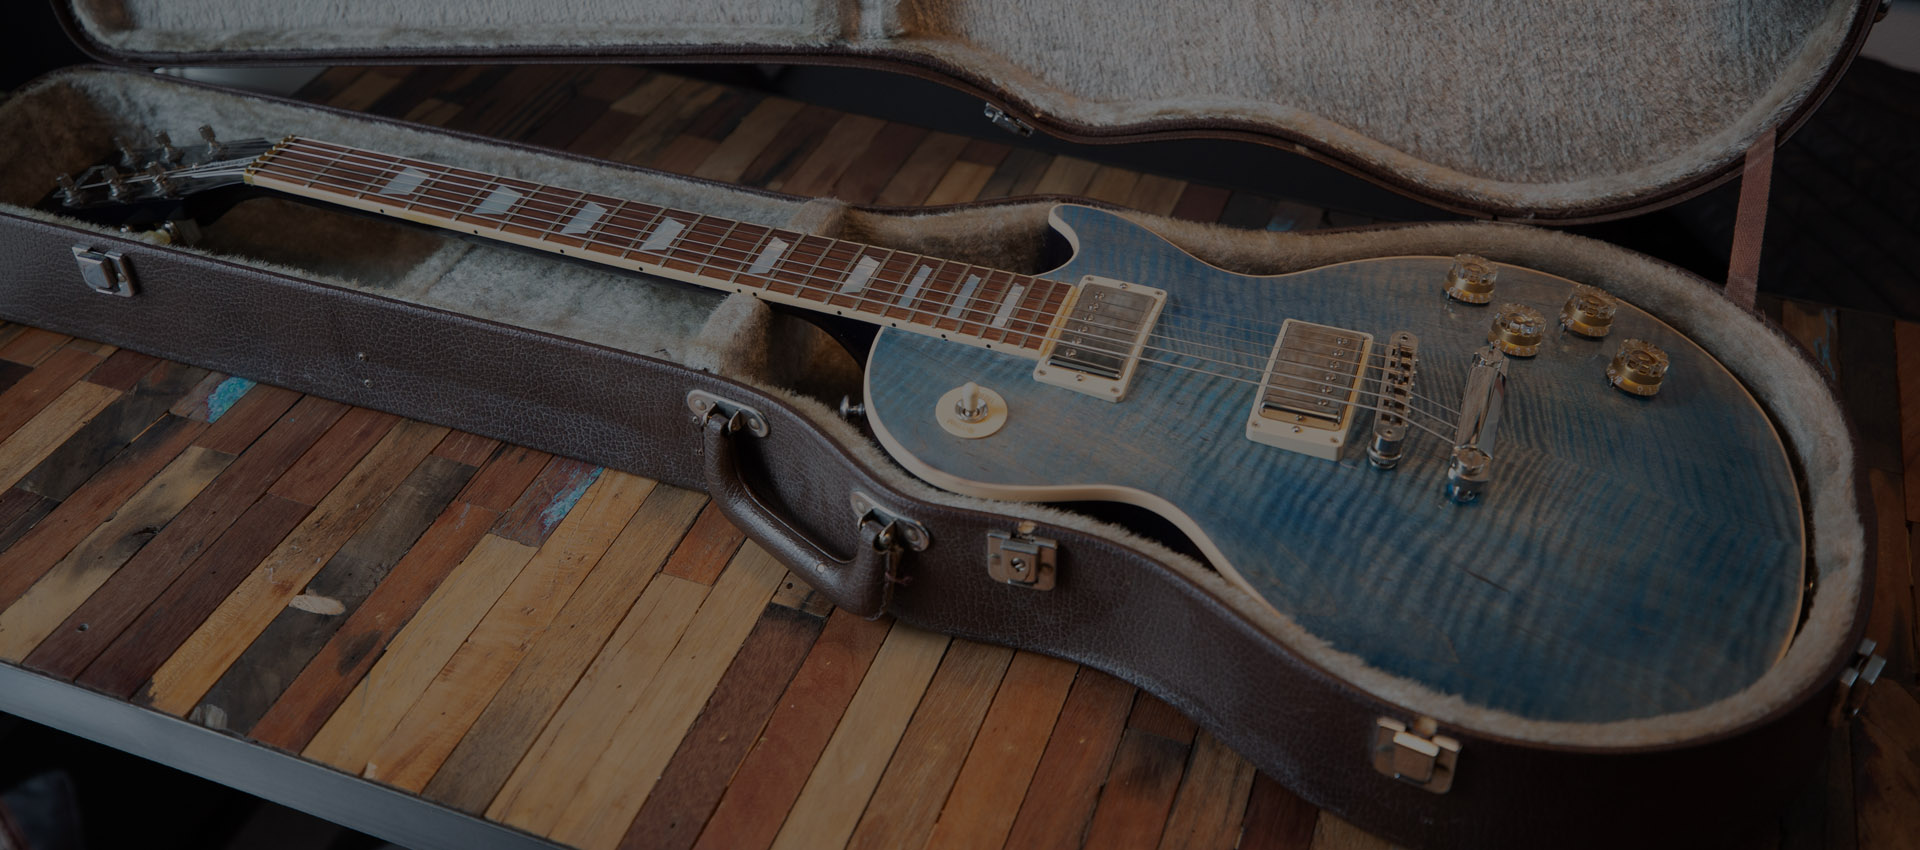 Incredible Vintage Guitars